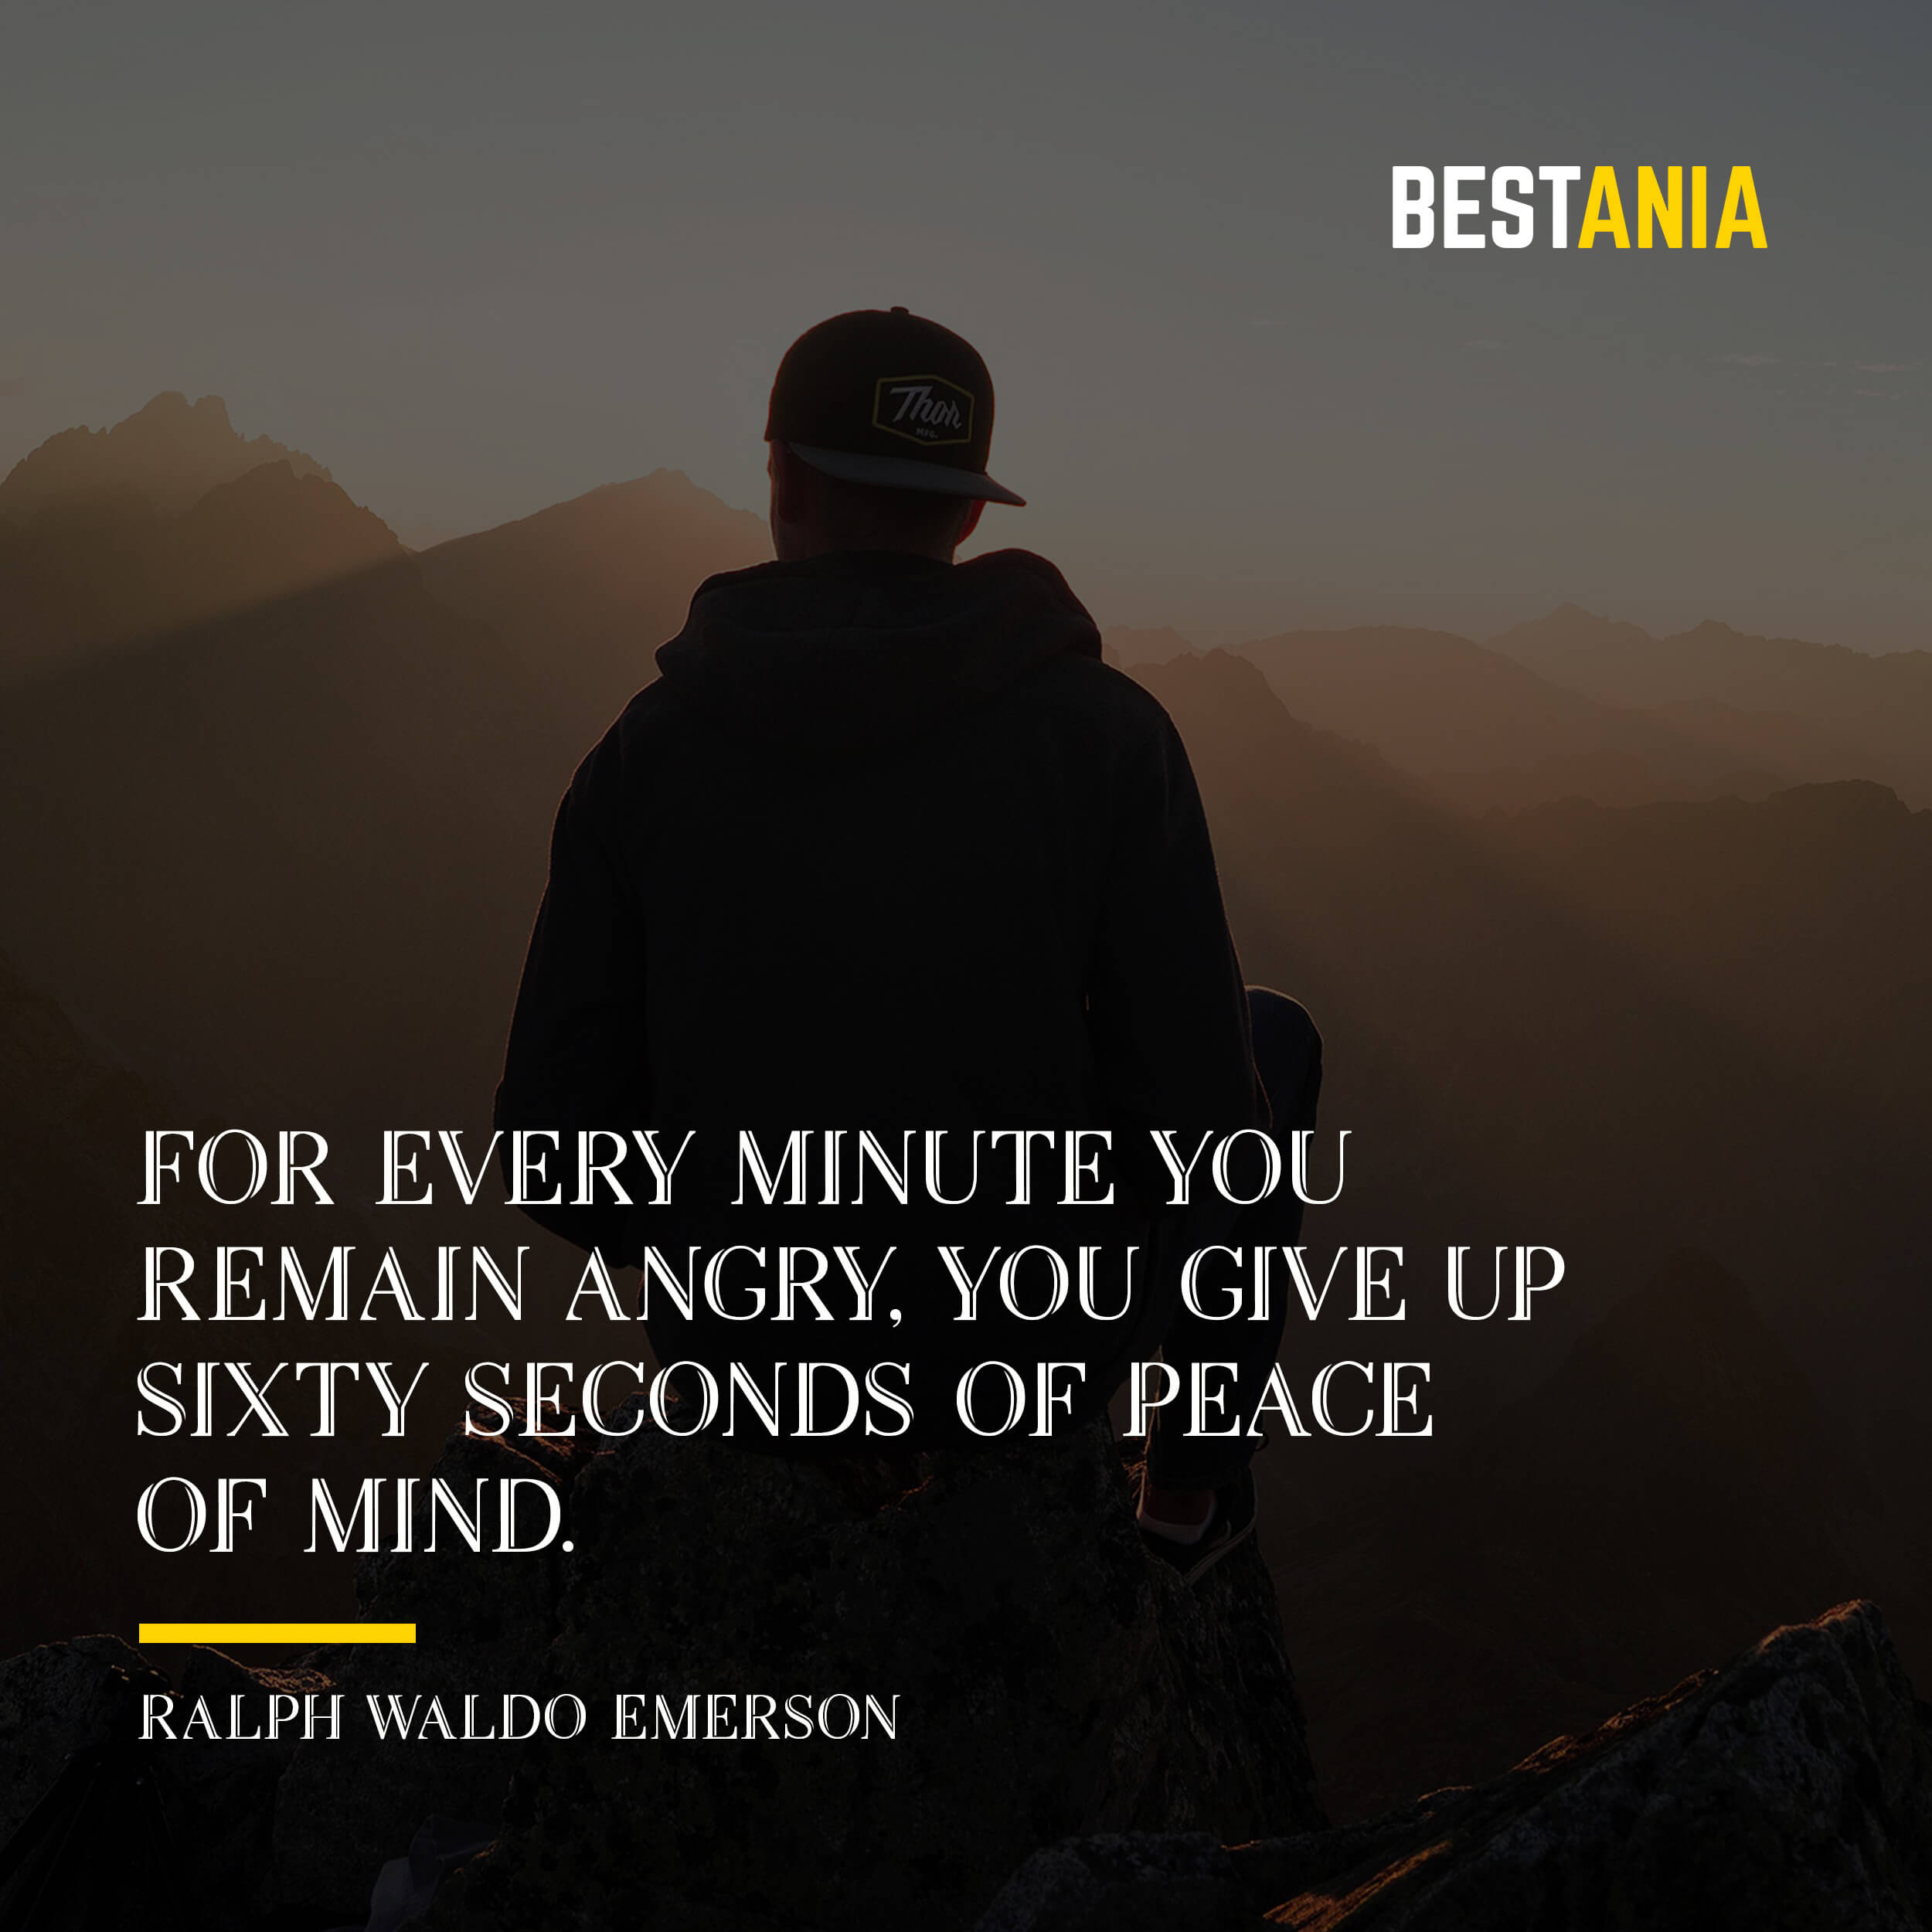 """FOR EVERY MINUTE YOU REMAIN ANGRY, YOU GIVE UP SIXTY SECONDS OF PEACE OF MIND."" RALPH WALDO EMERSON"